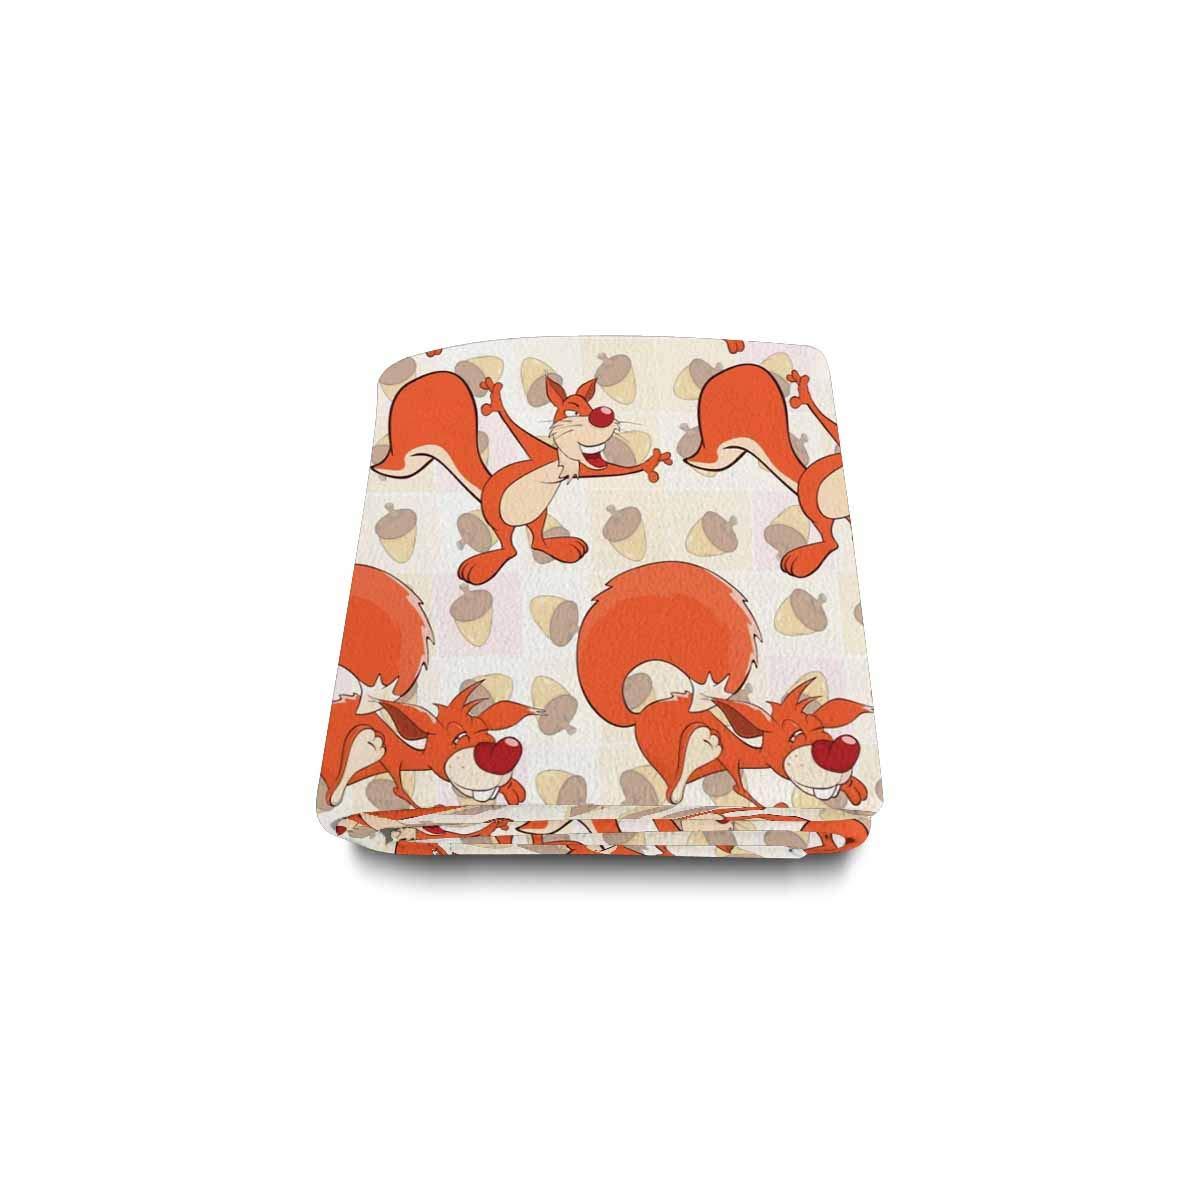 Amazon.com: INTERESTPRINT Cute Squirrels Fleece Luxury ...